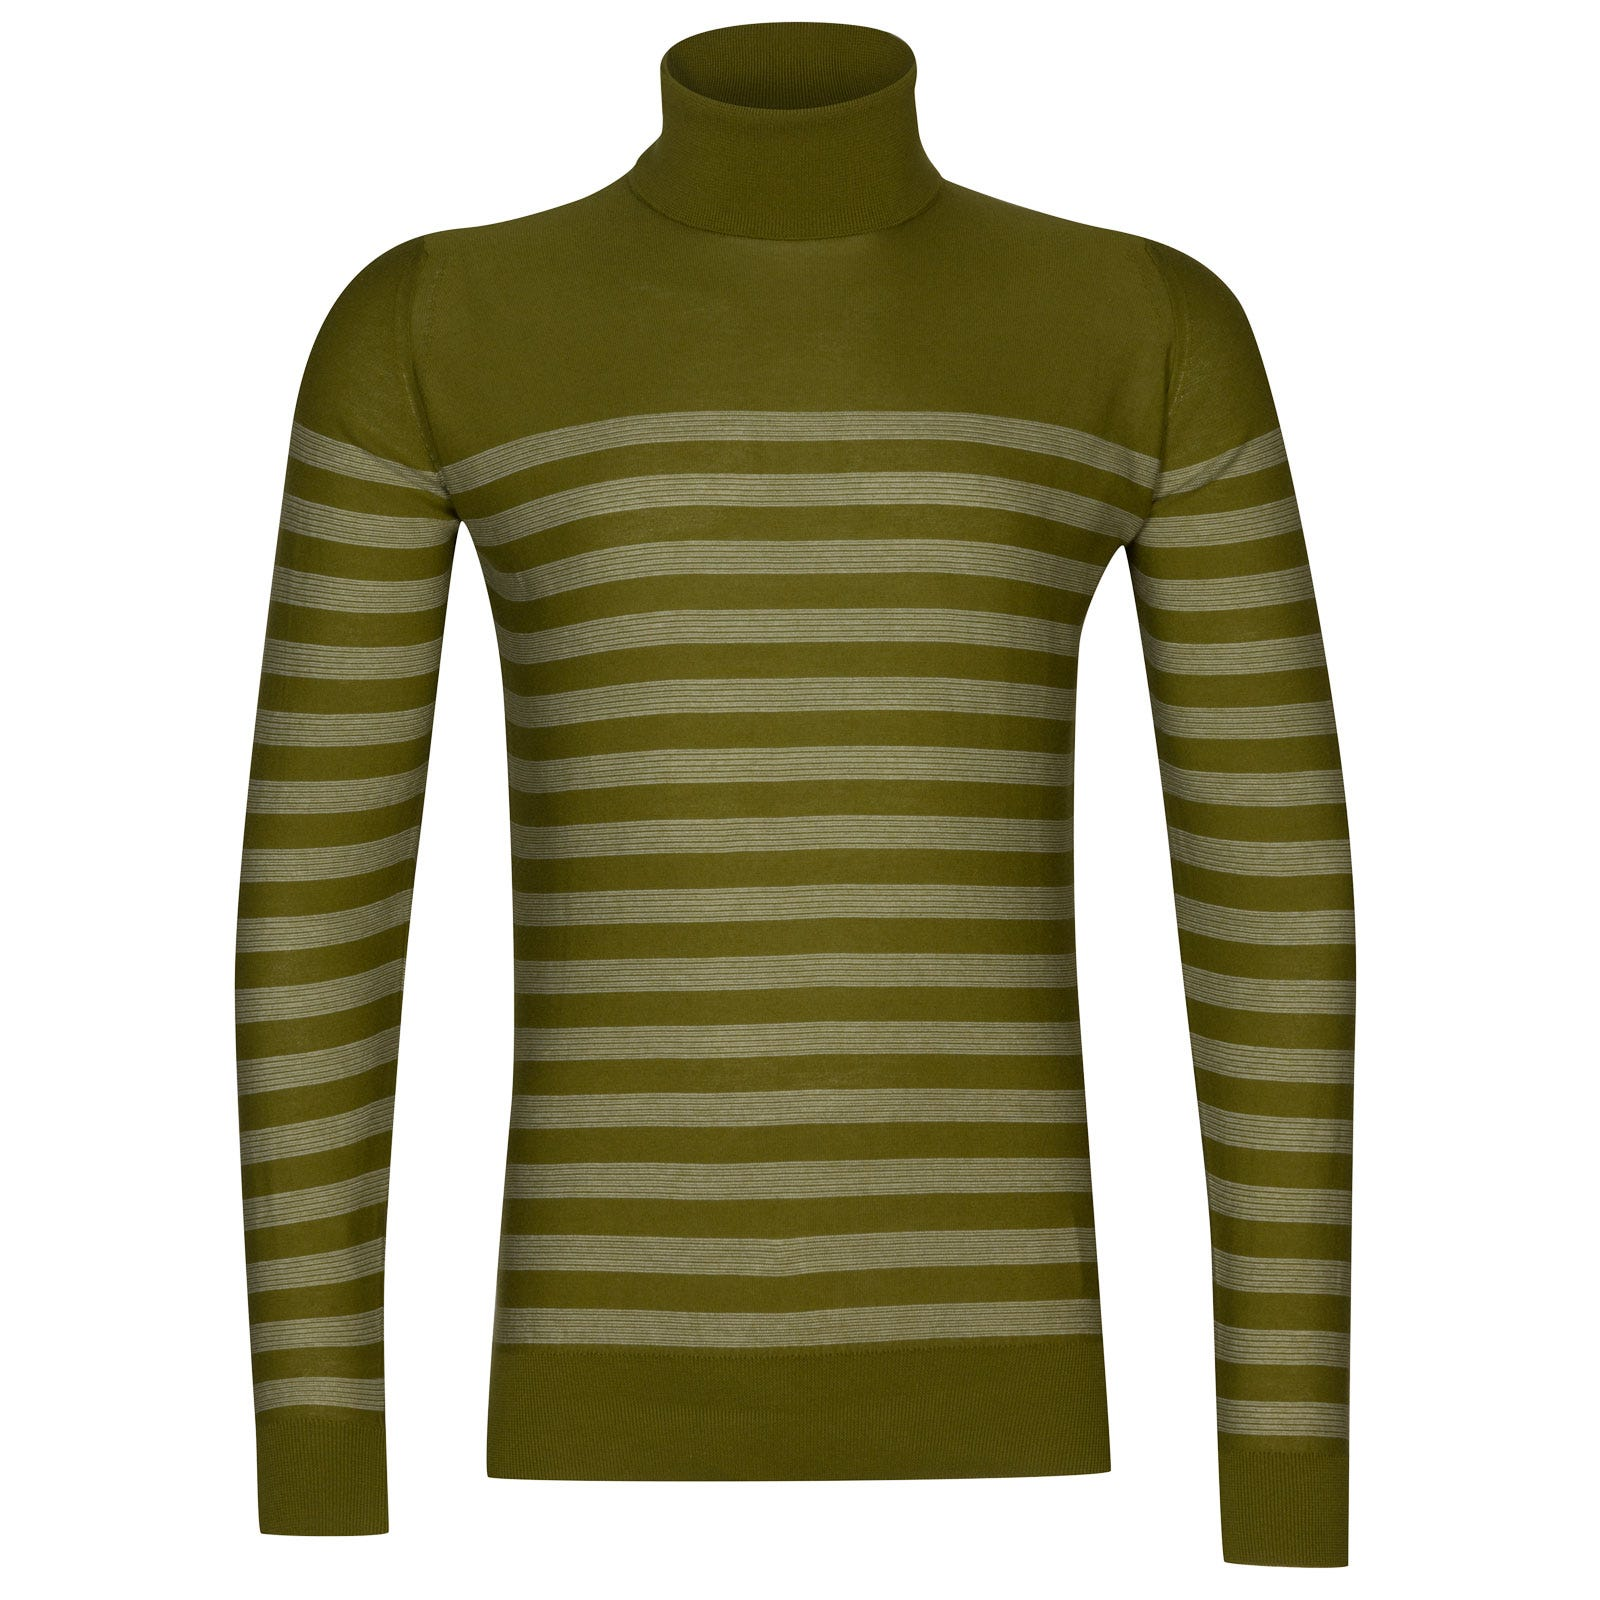 John Smedley tenby Sea Island Cotton Sweater in Lumsdale Green/White-M